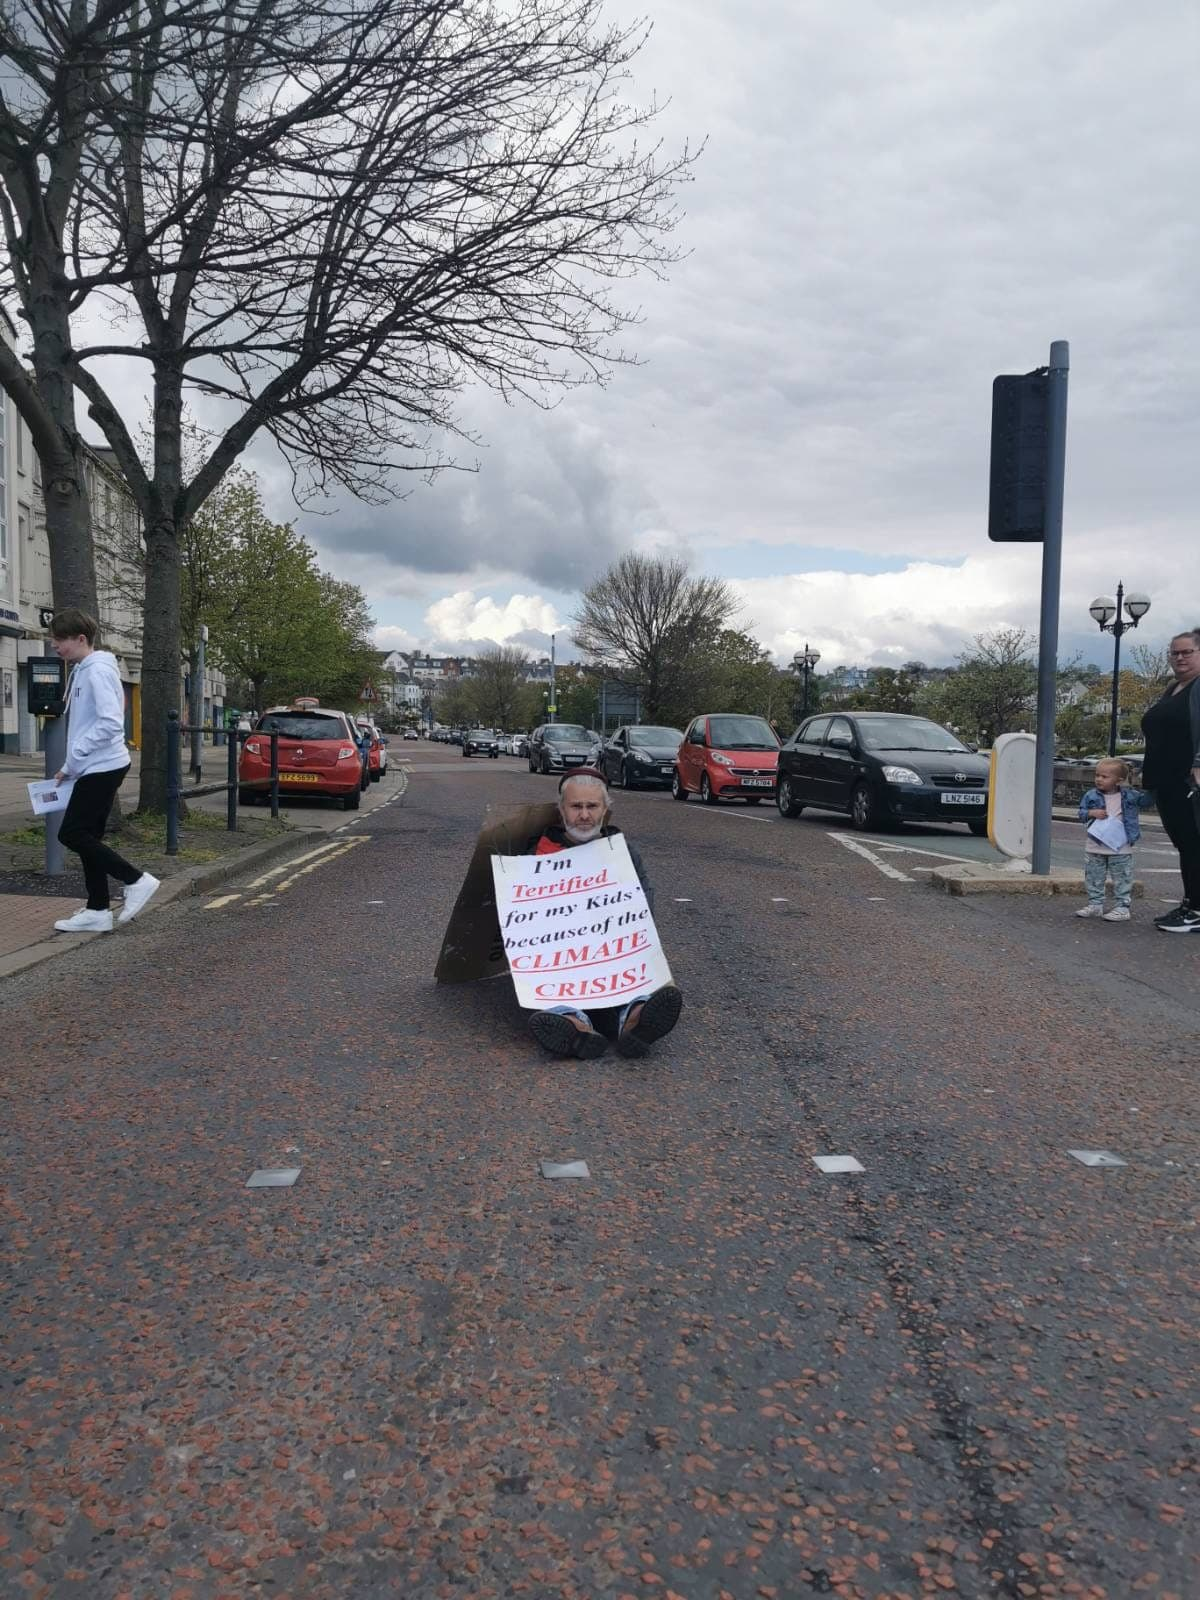 One man protest